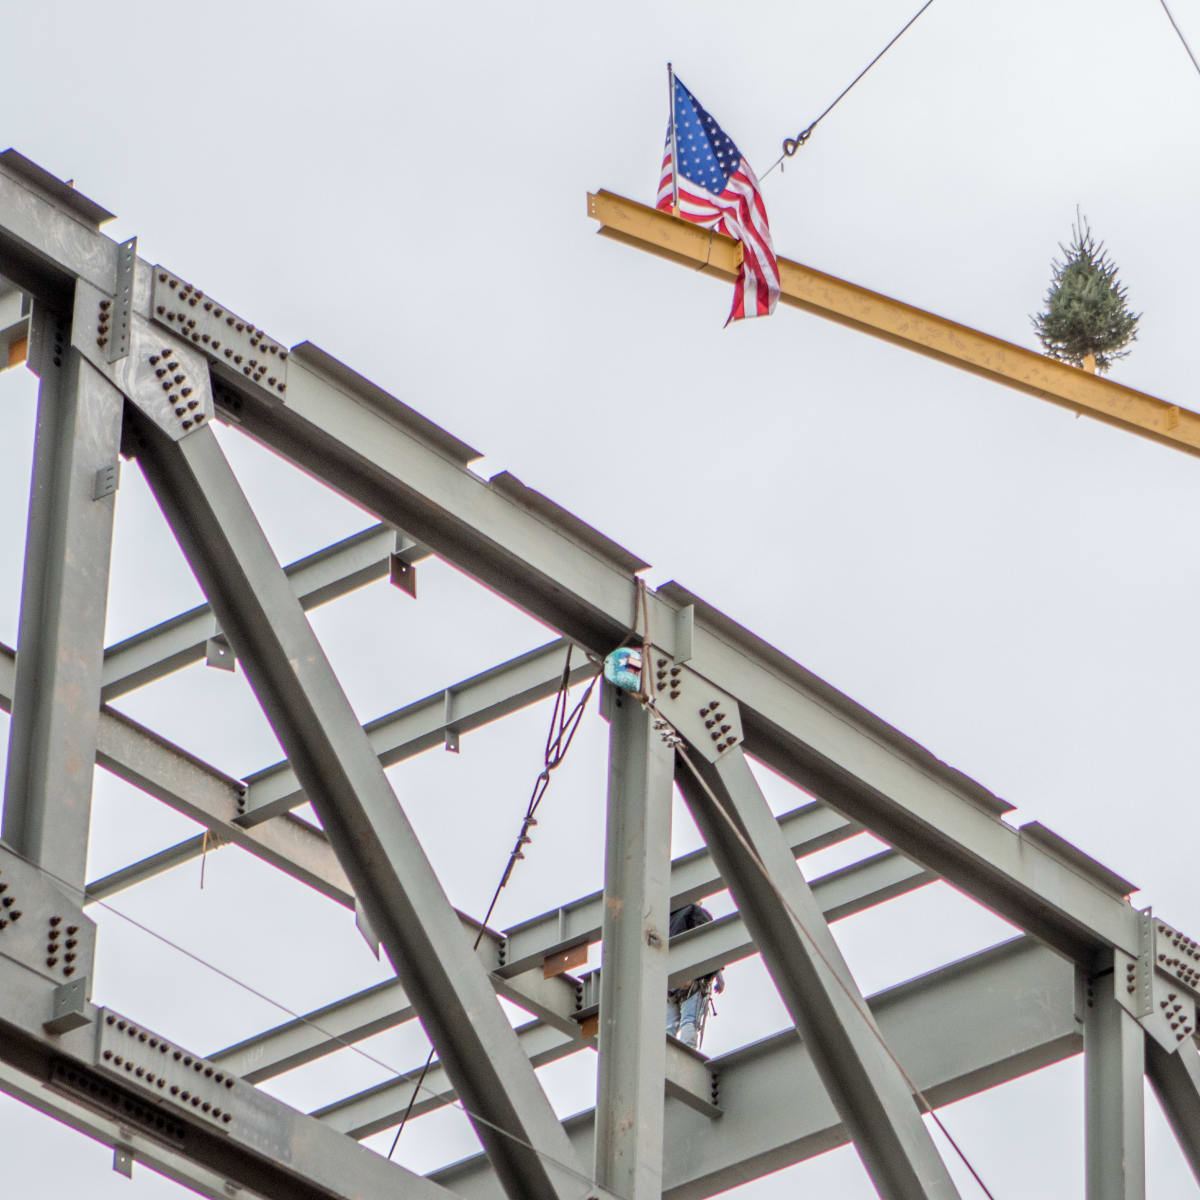 Smart Financial Centre in Sugar Land topping off